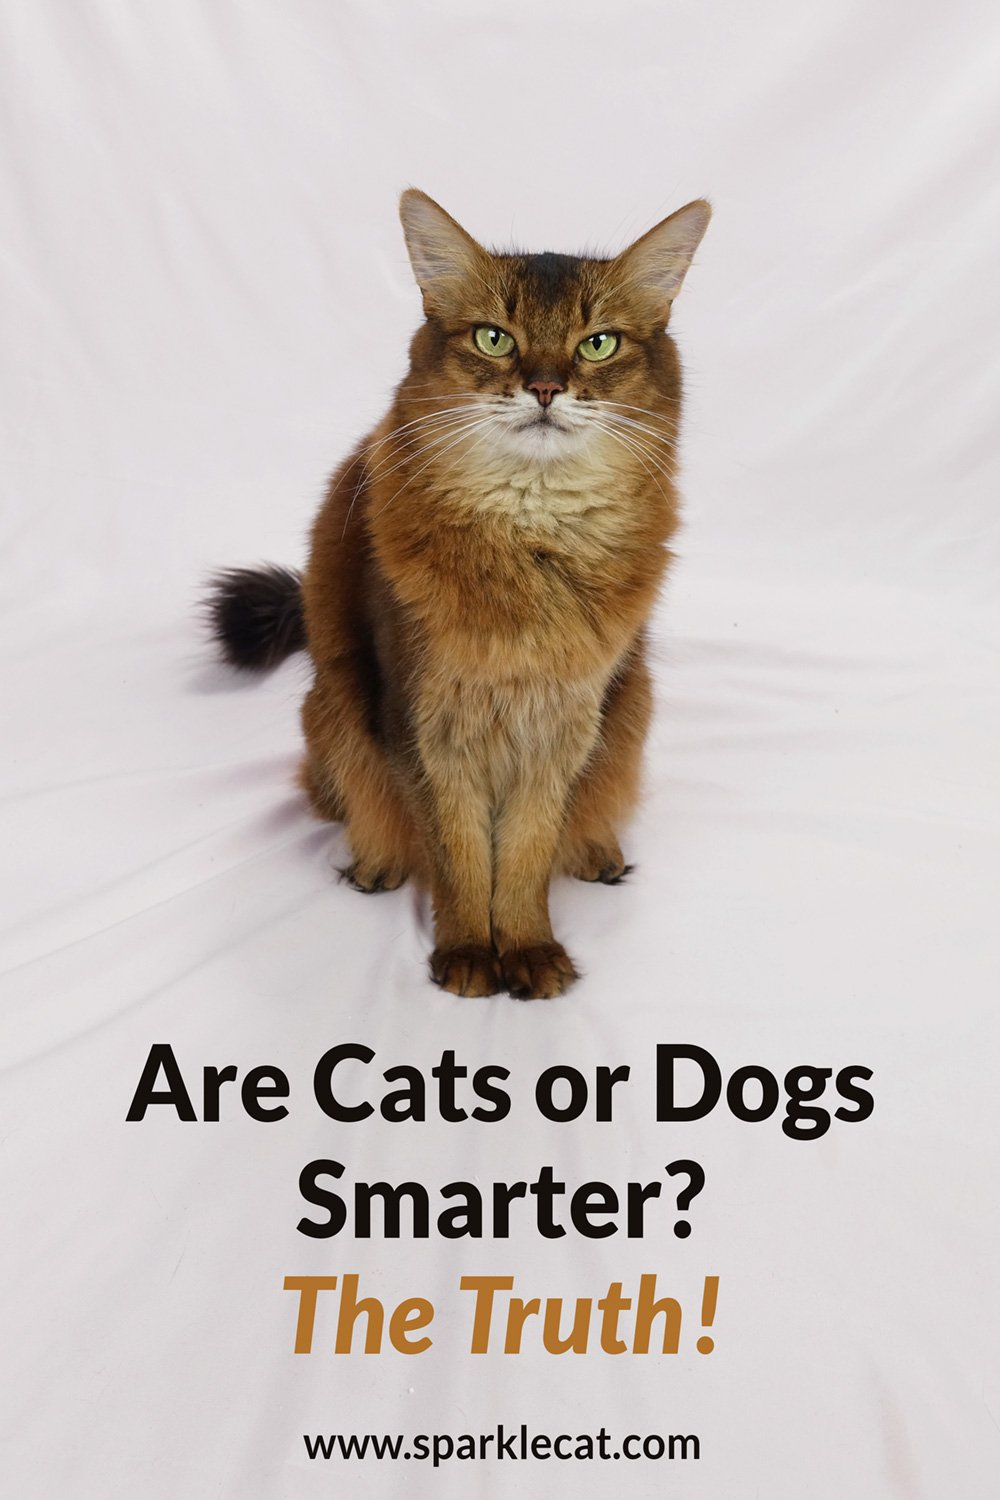 Who's Smarter, Cats or Dogs? The Final Word